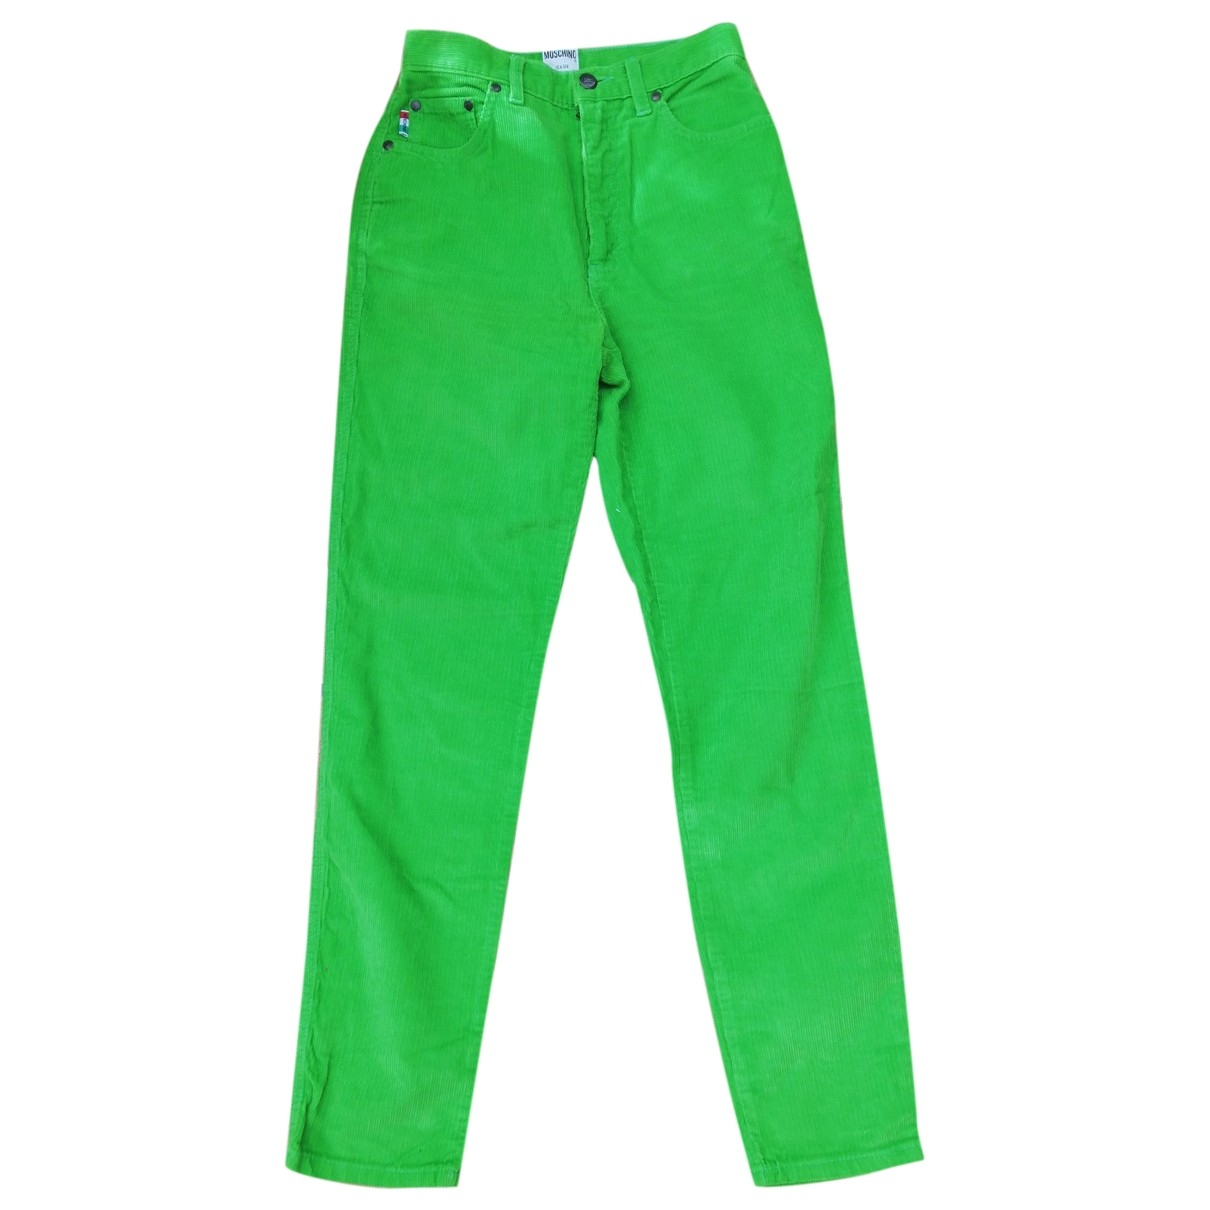 Moschino Cheap And Chic \N Green Velvet Trousers for Women 36 FR